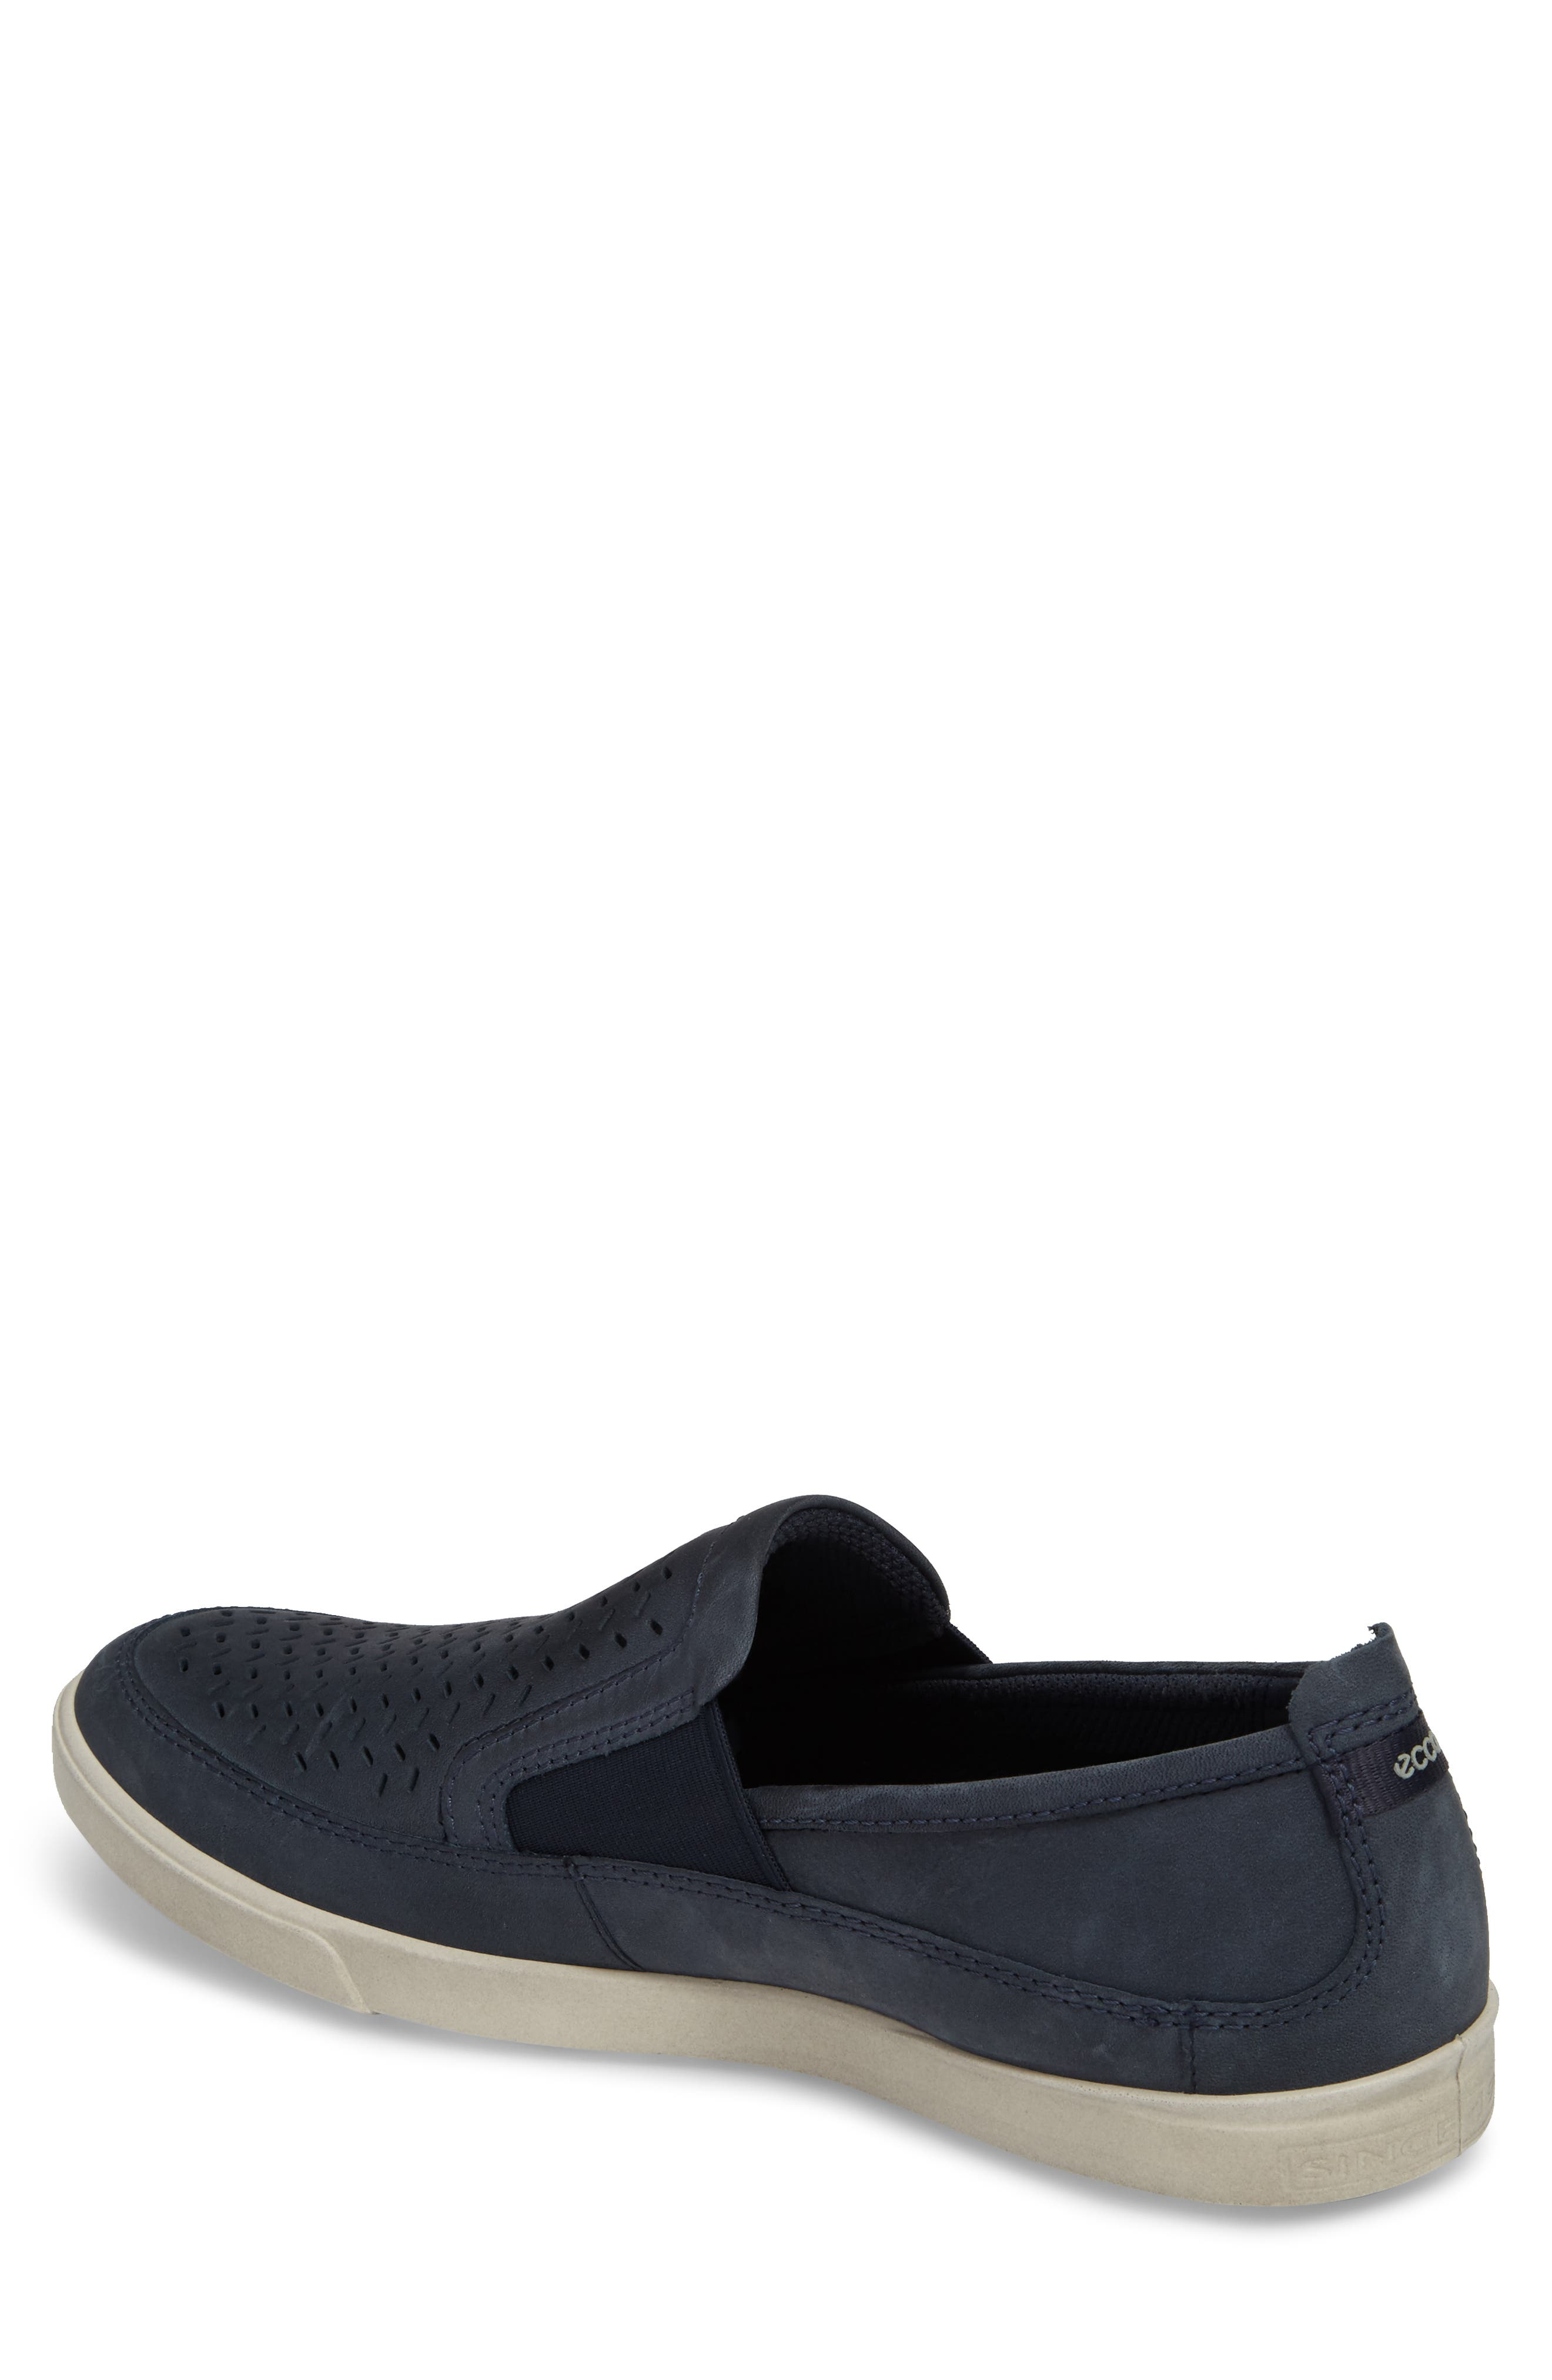 'Collin' Perforated Slip On Sneaker,                             Alternate thumbnail 2, color,                             MARINE LEATHER